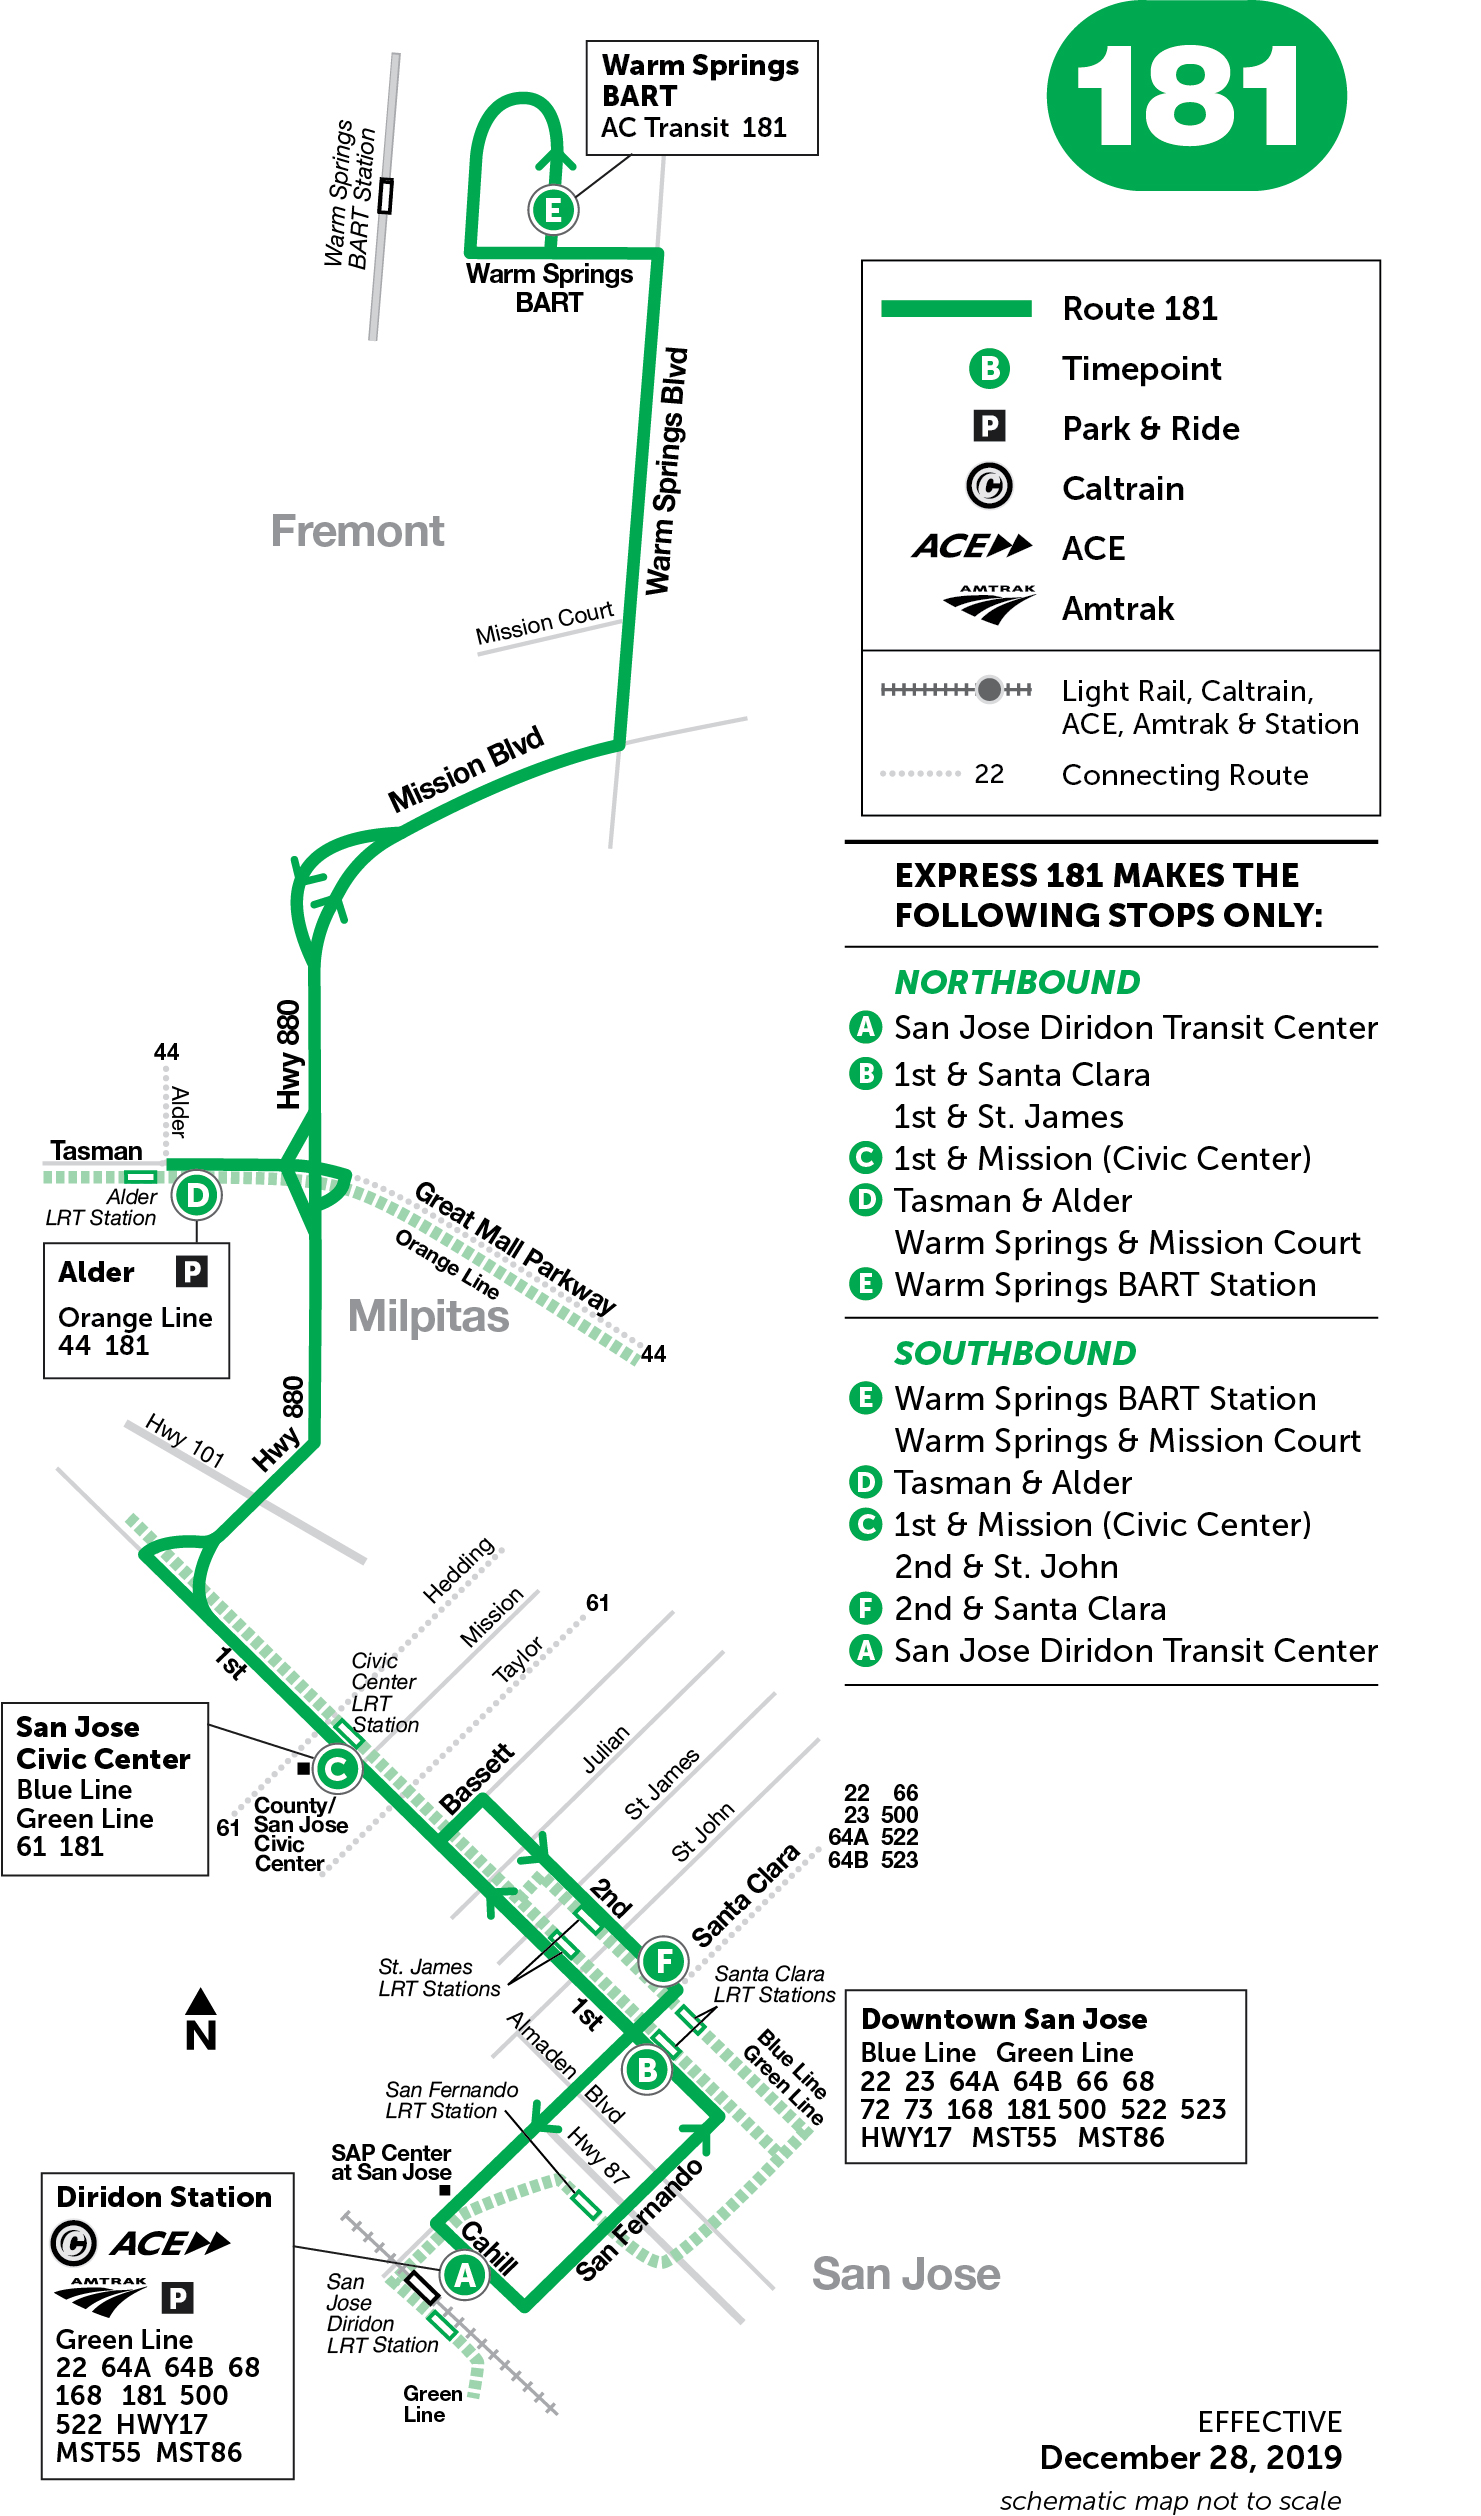 Schematic map of route 181 effective Dec 28, 2019